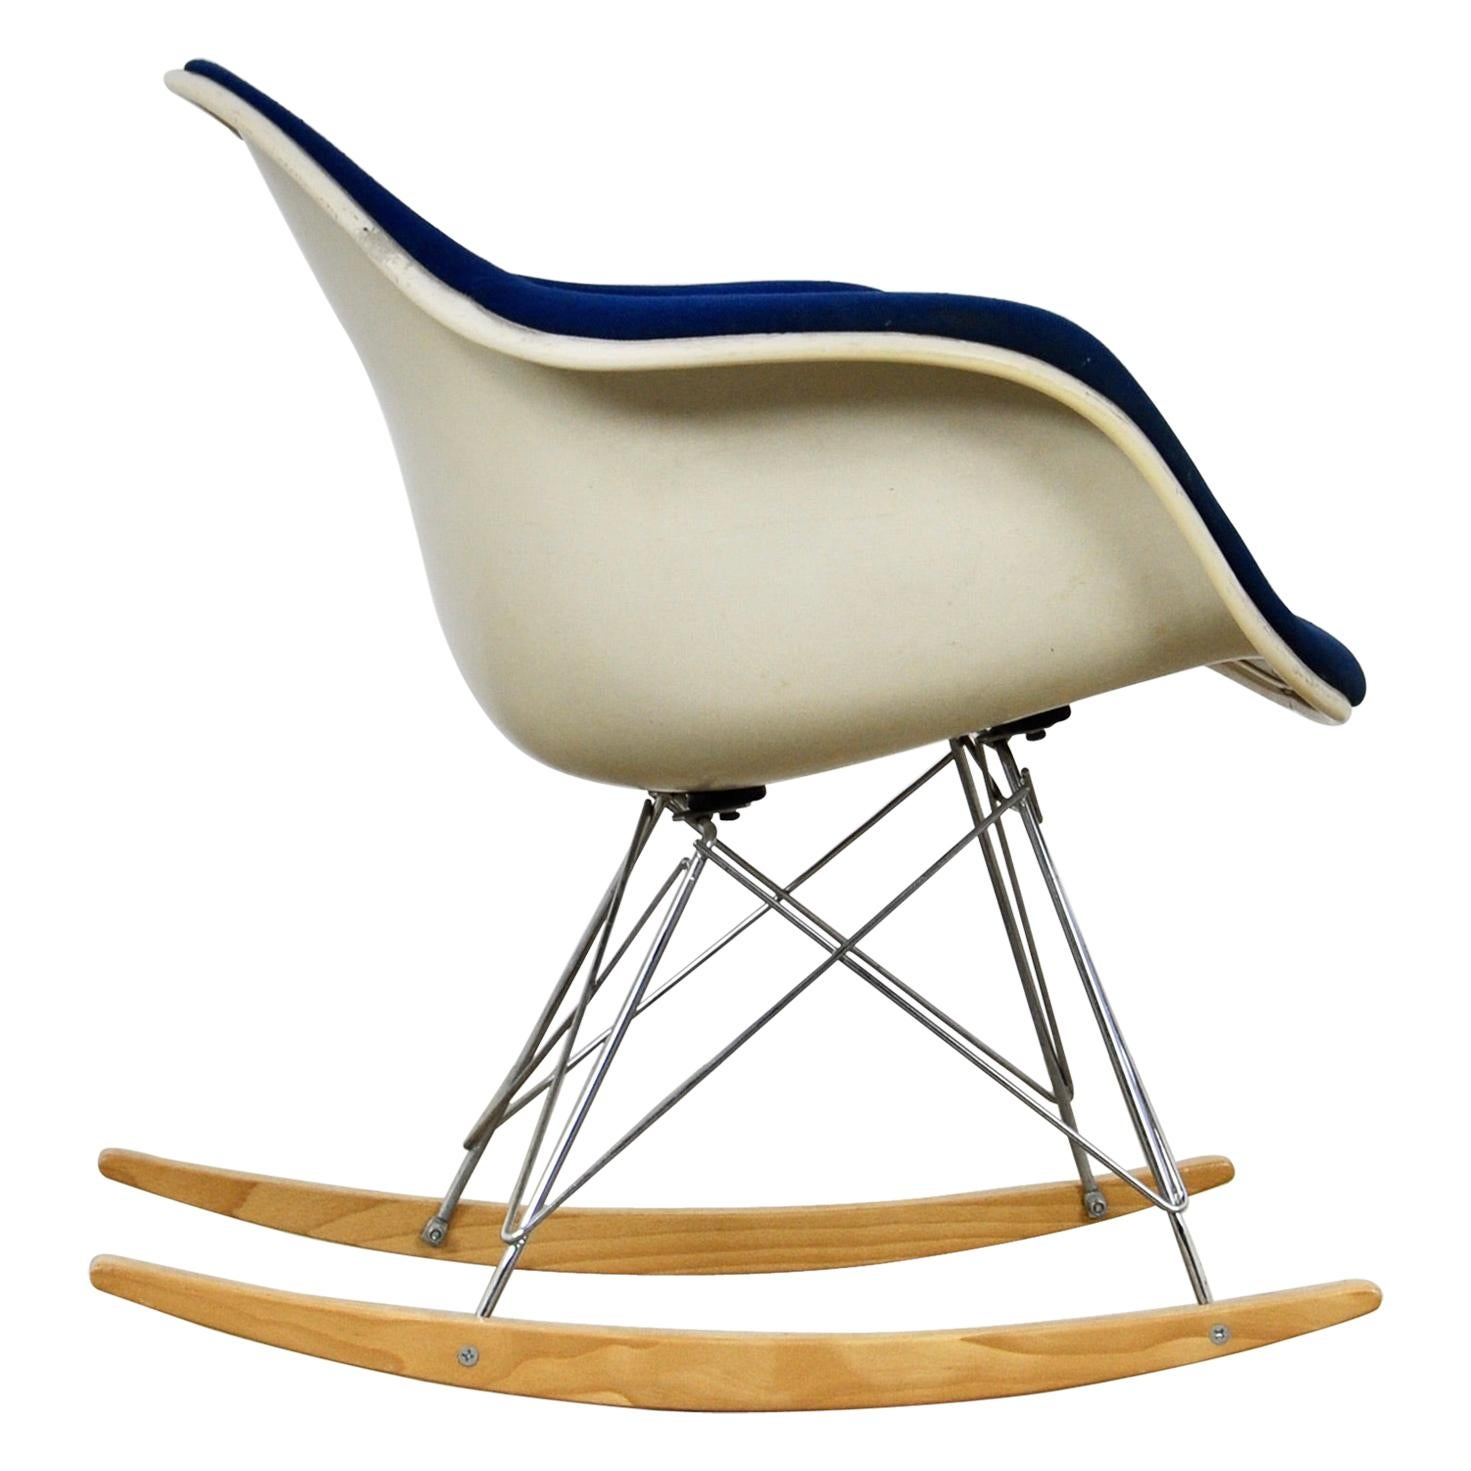 Rocking Chair by Charles & Ray Eames For Herman Miller, 1960s